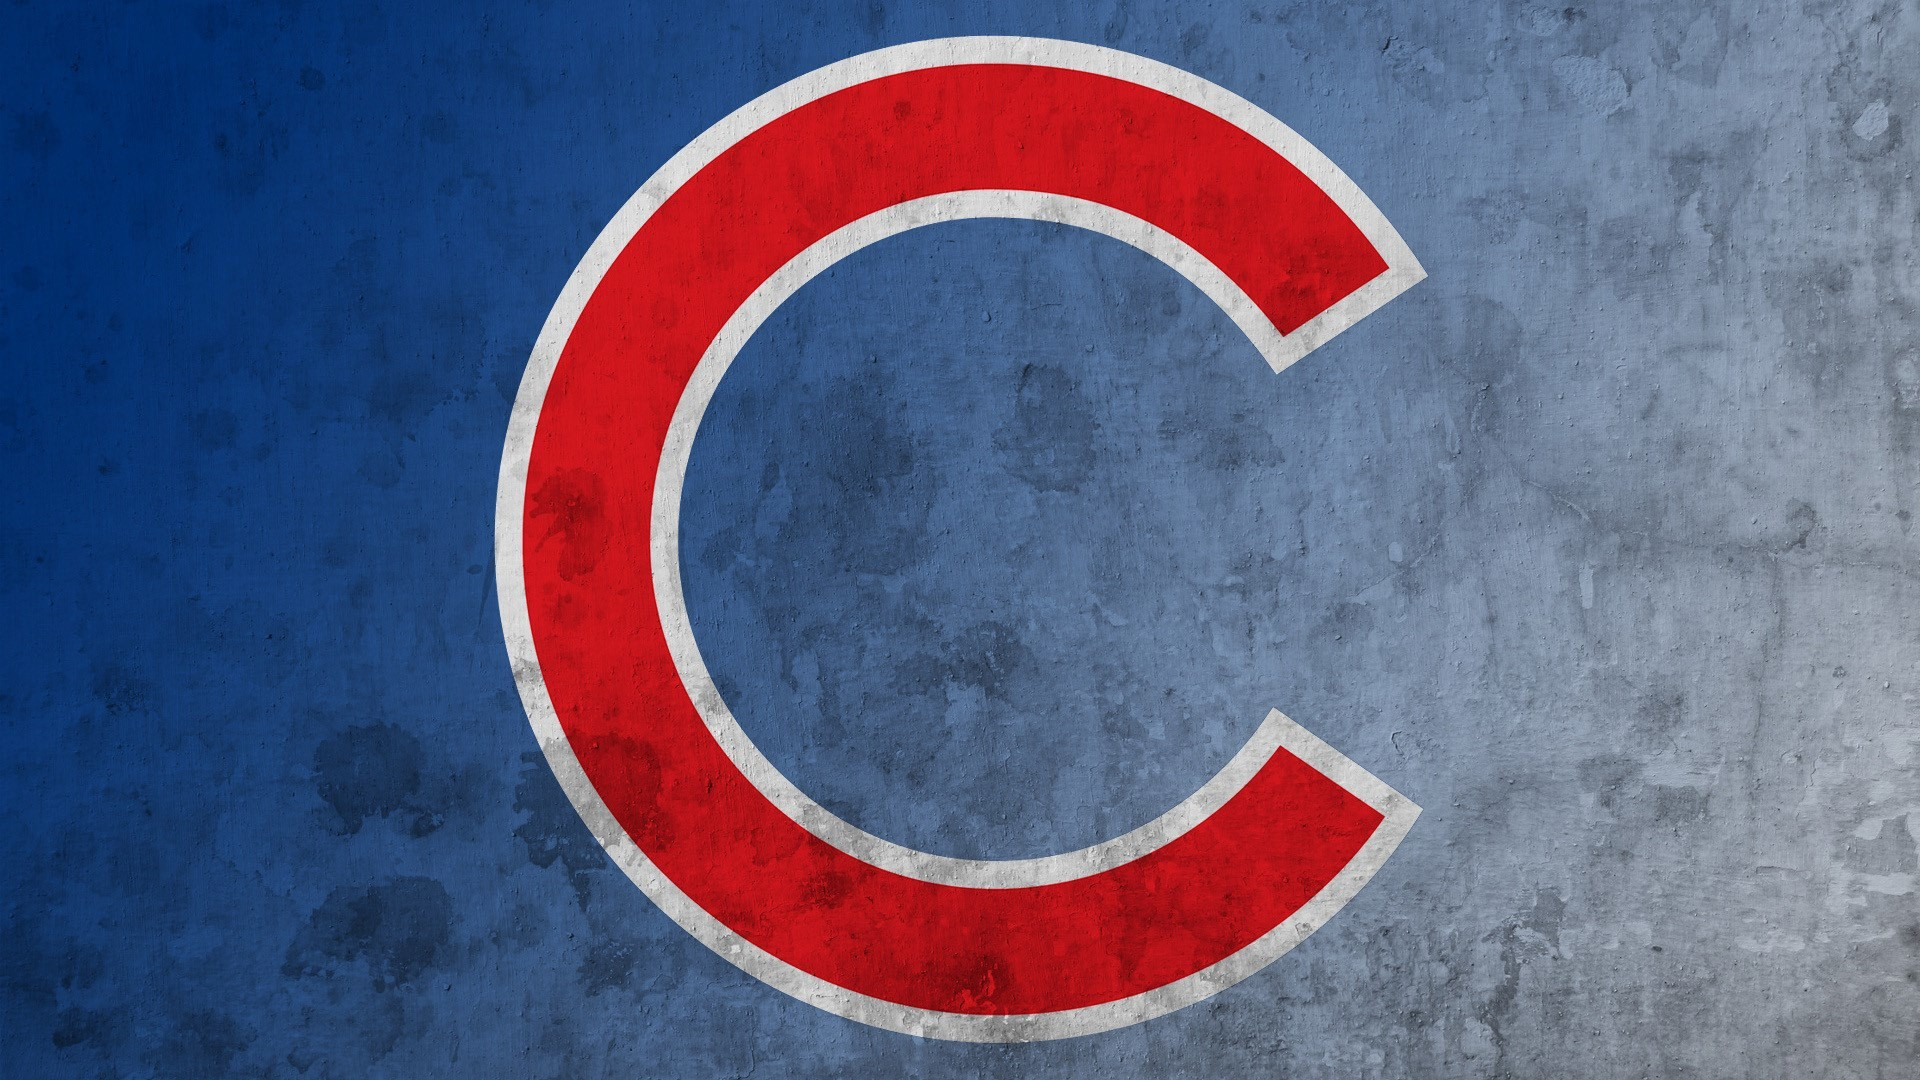 1920x1080 chicago cubs desktop backgrounds wallpaper,  (510 kB)